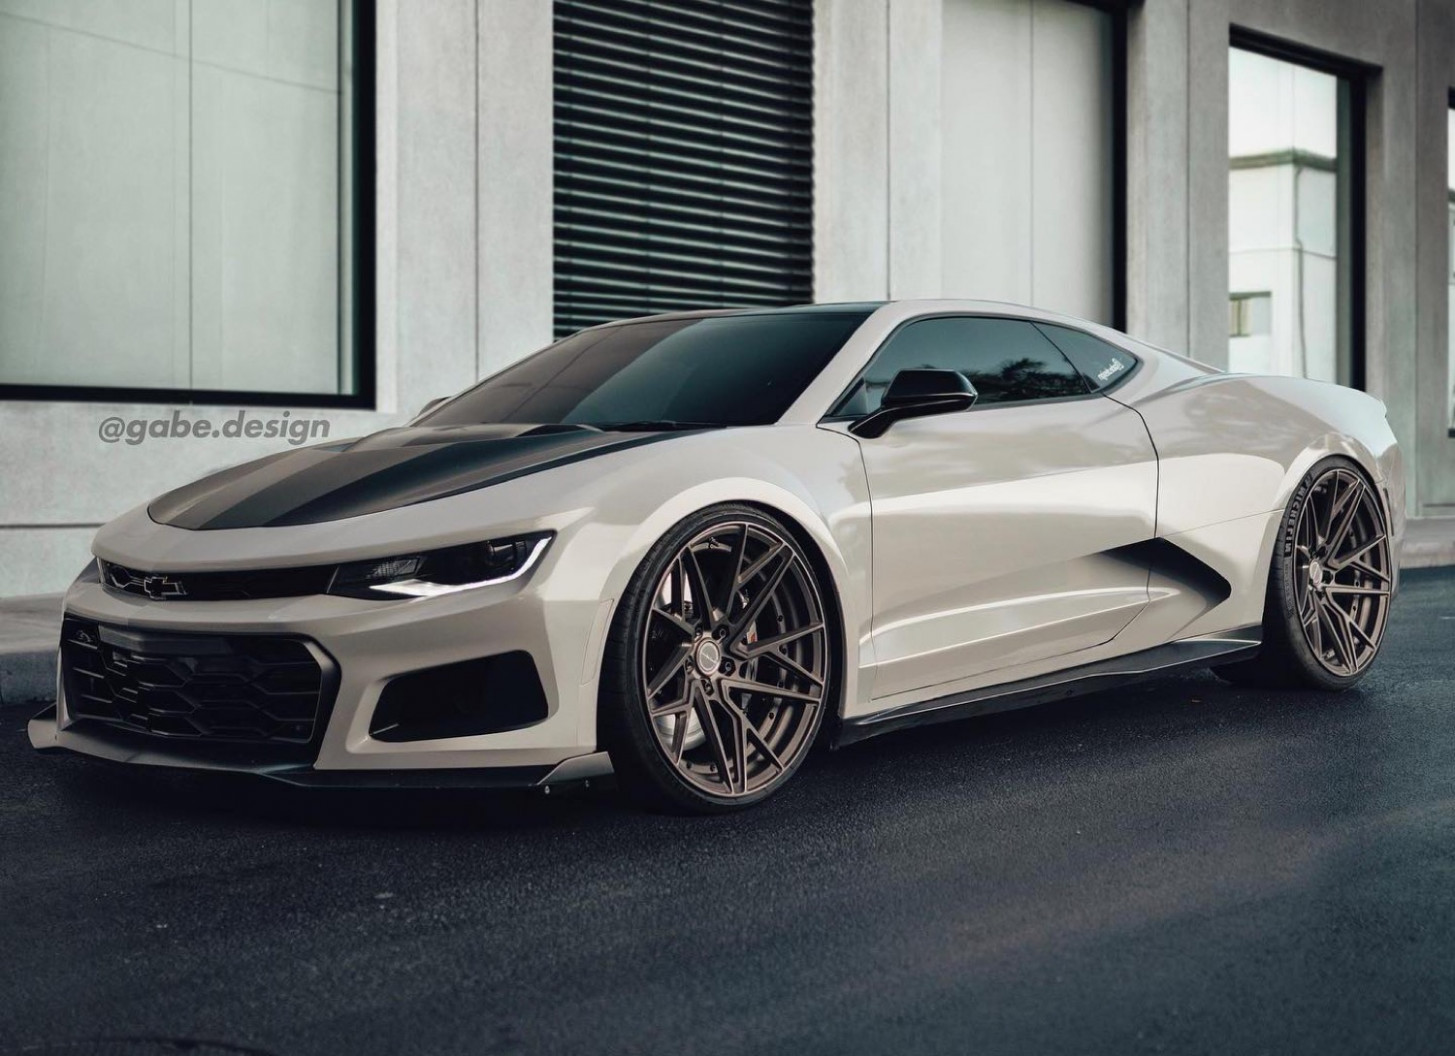 Review 2022 Chevrolet Camaro